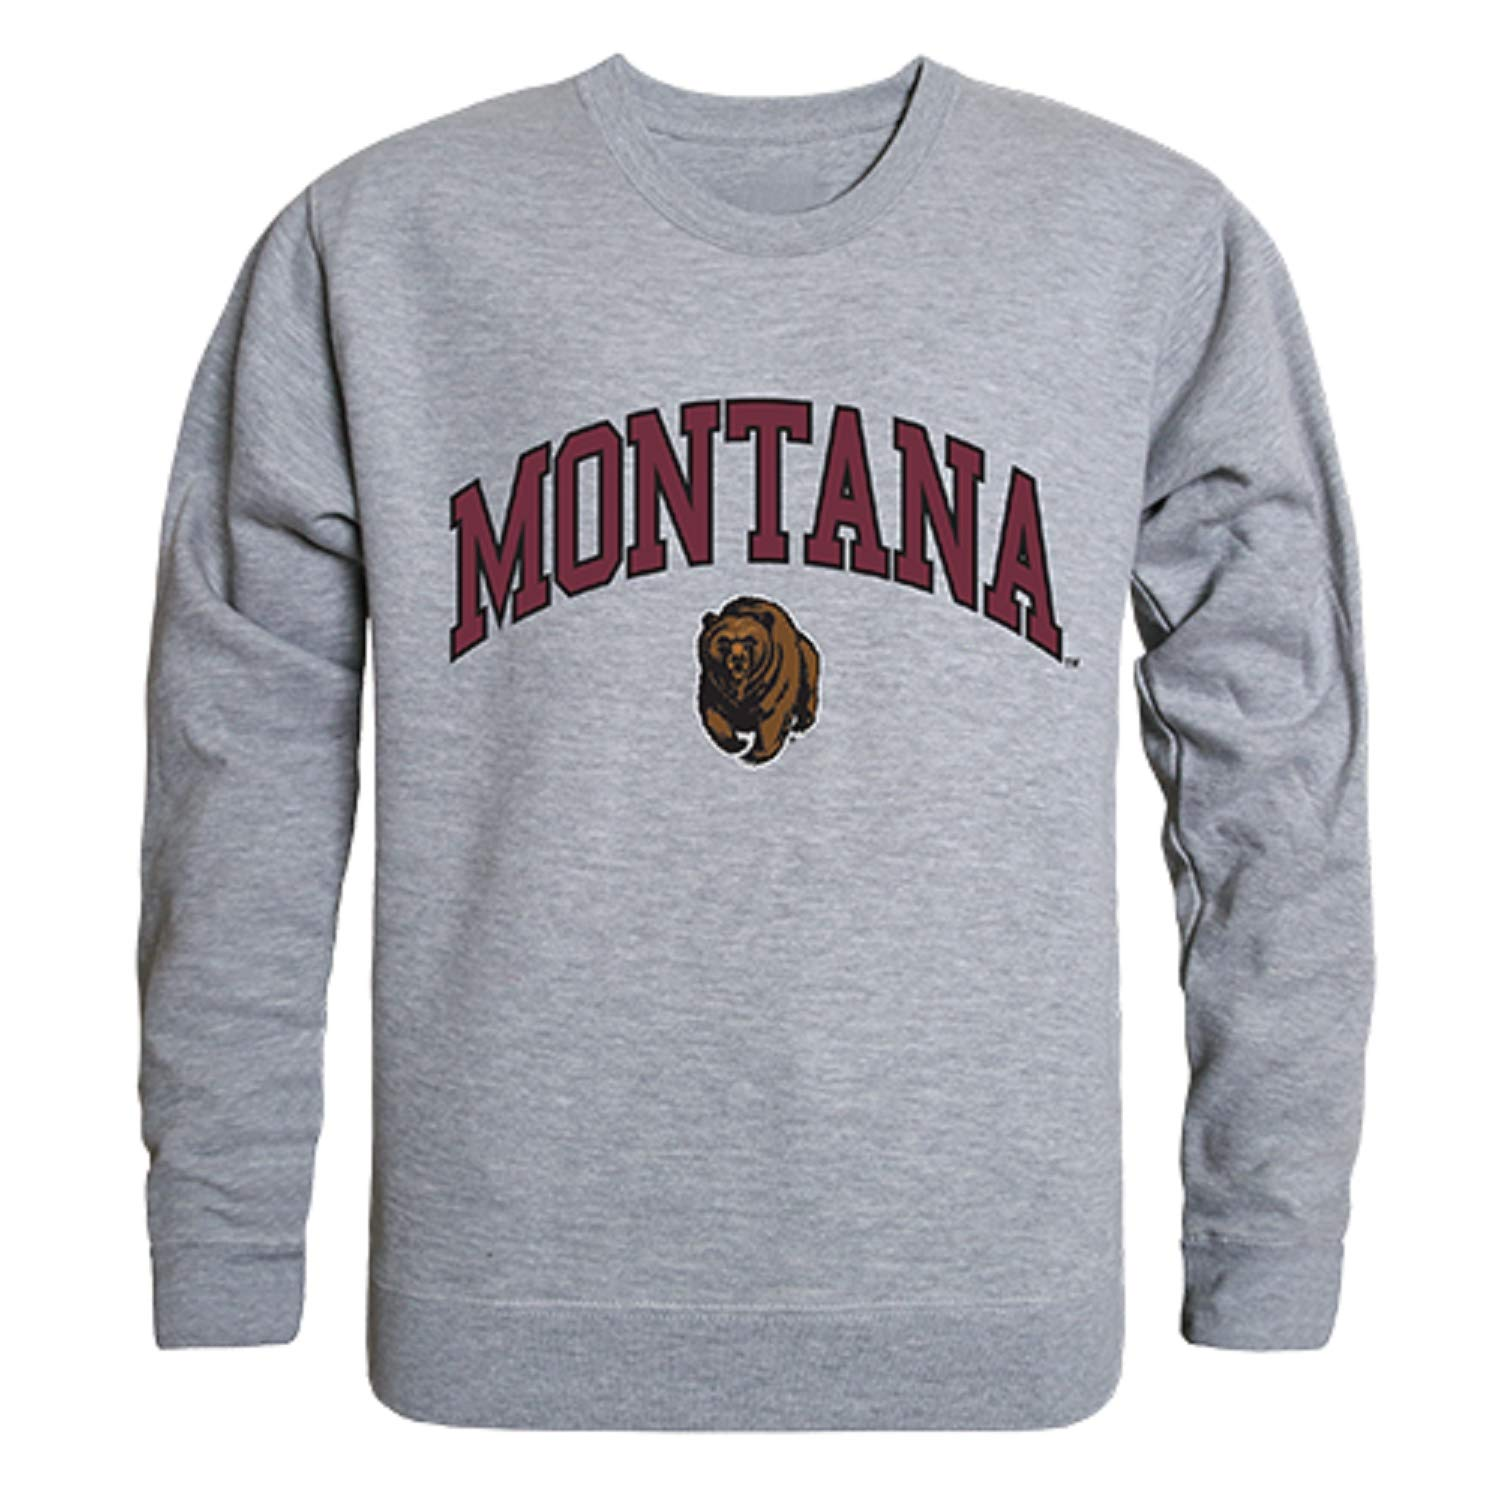 University of Montana Grizzlies NCAA Crewneck College Sweater S M L XL 2XL